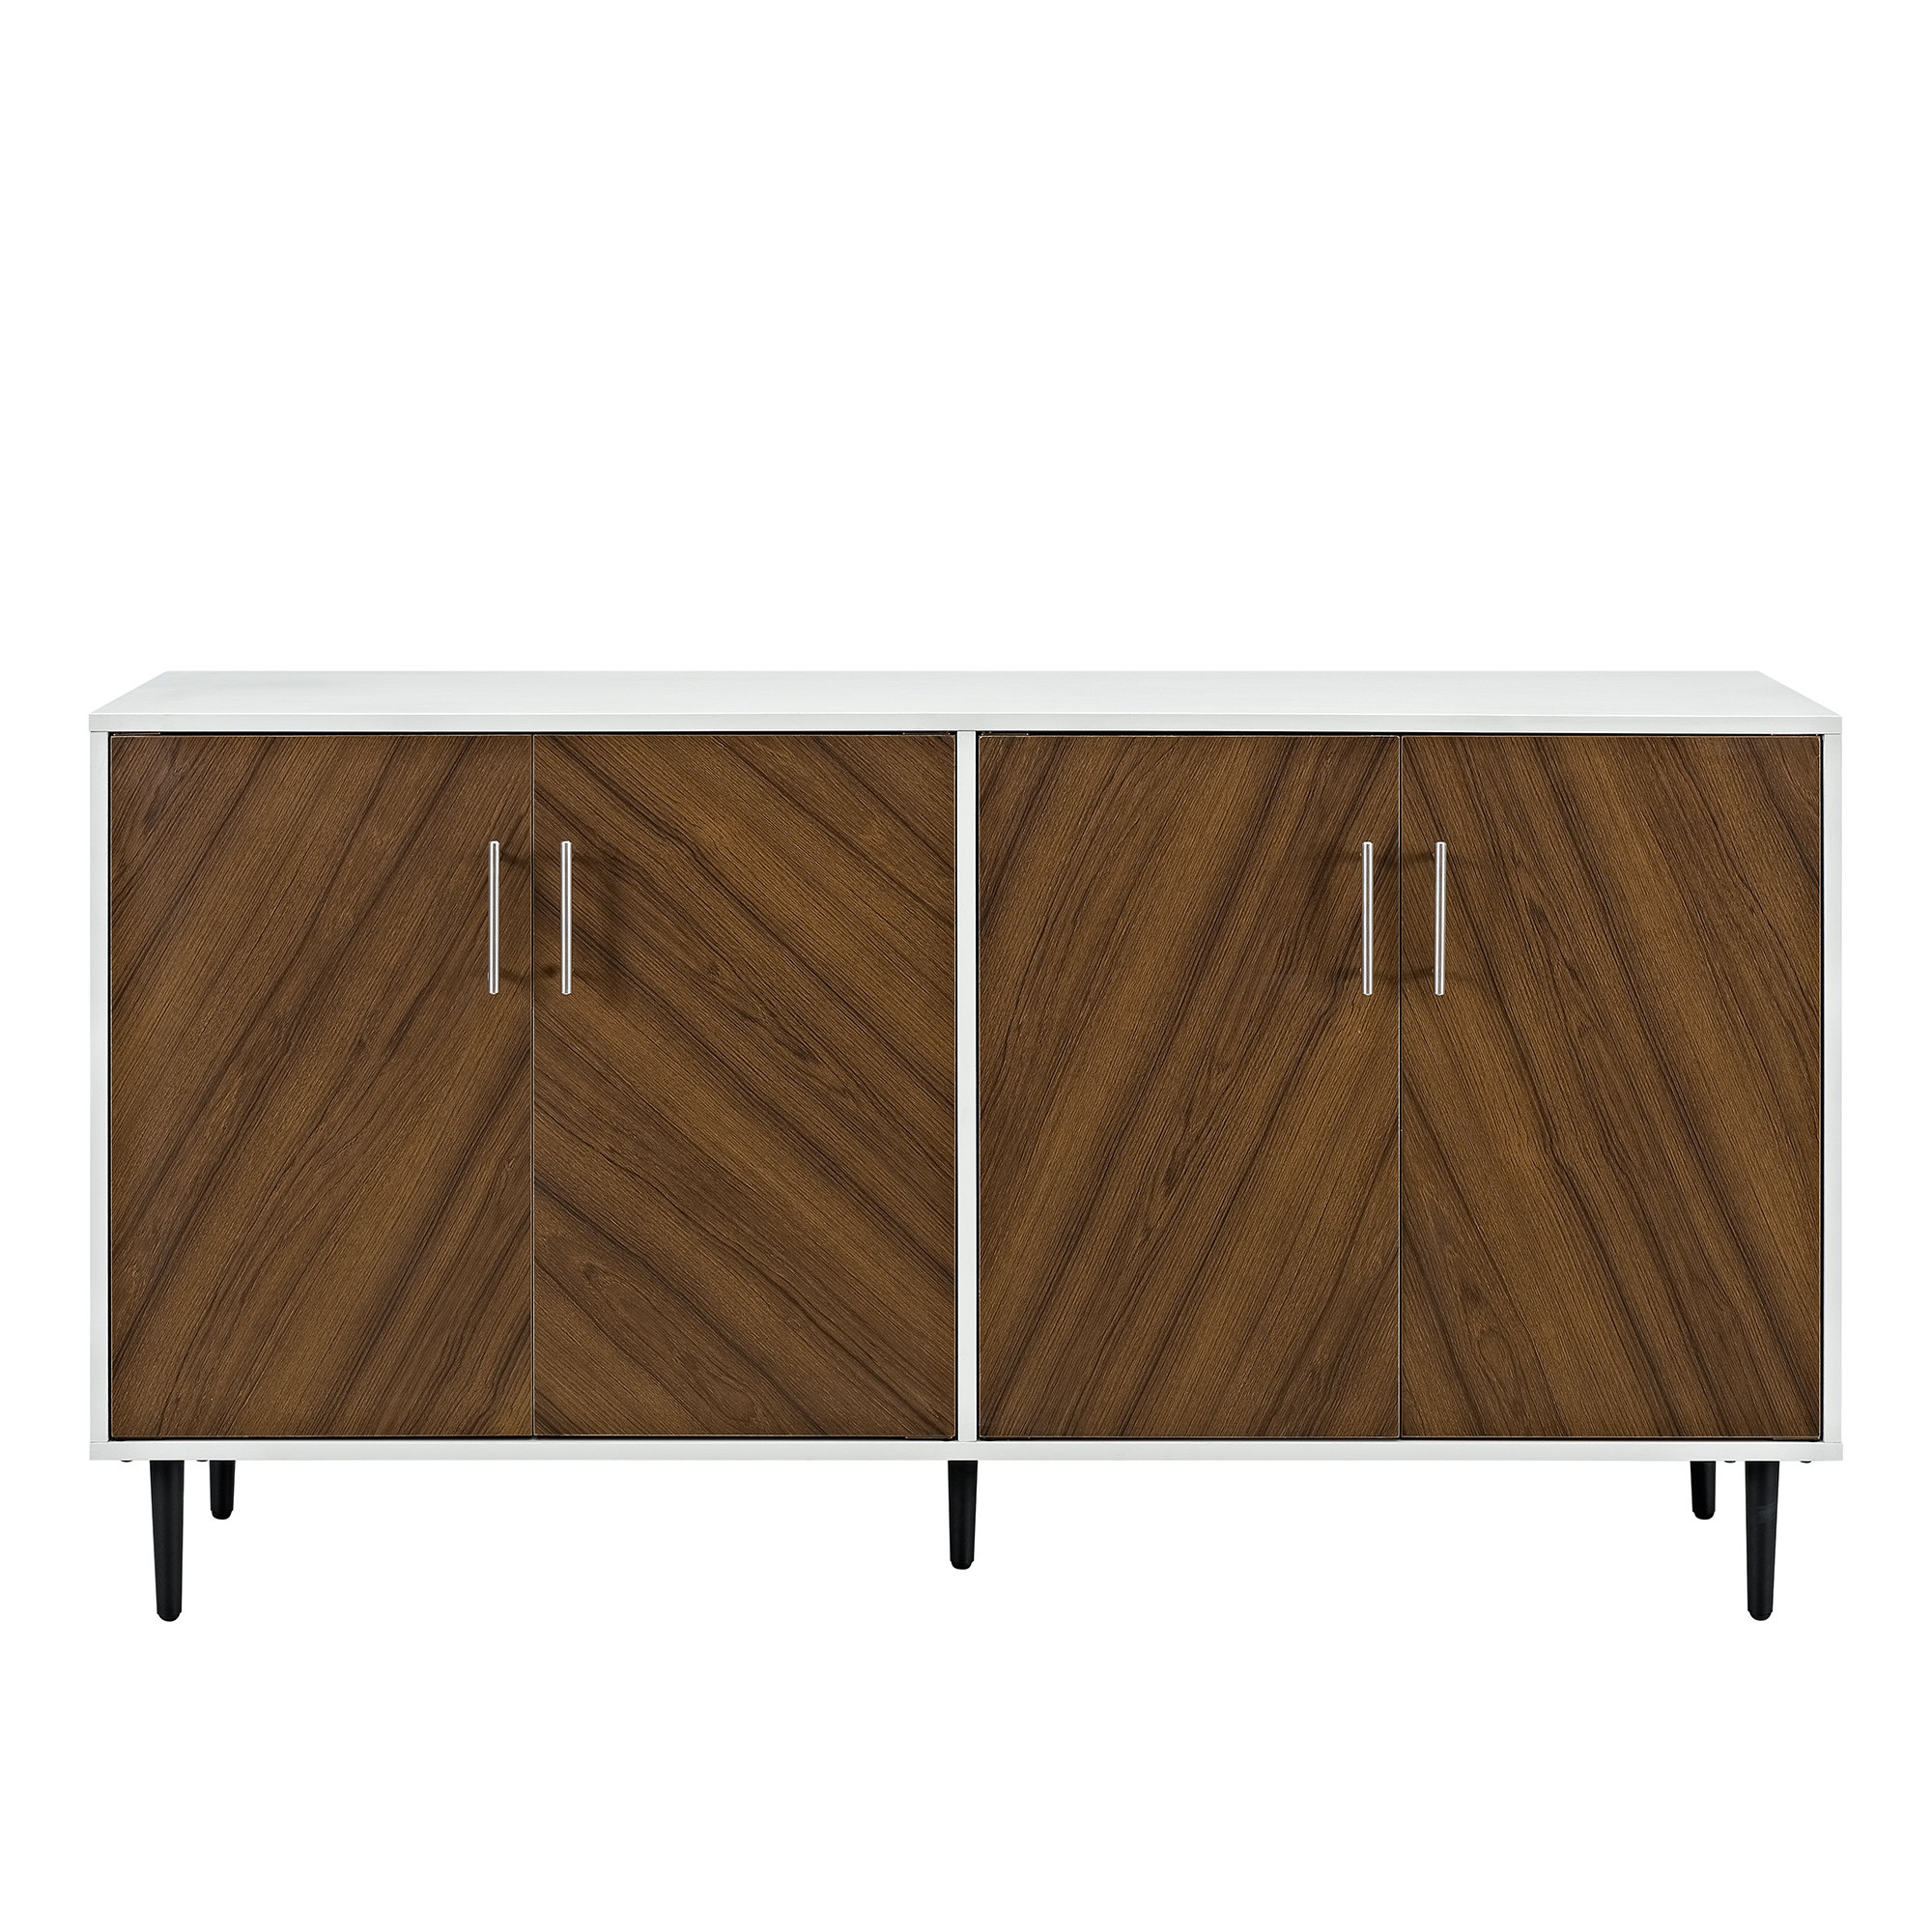 Keiko Modern Bookmatch Sideboard Pertaining To Mid Century Modern Glossy White Buffets (Gallery 13 of 20)